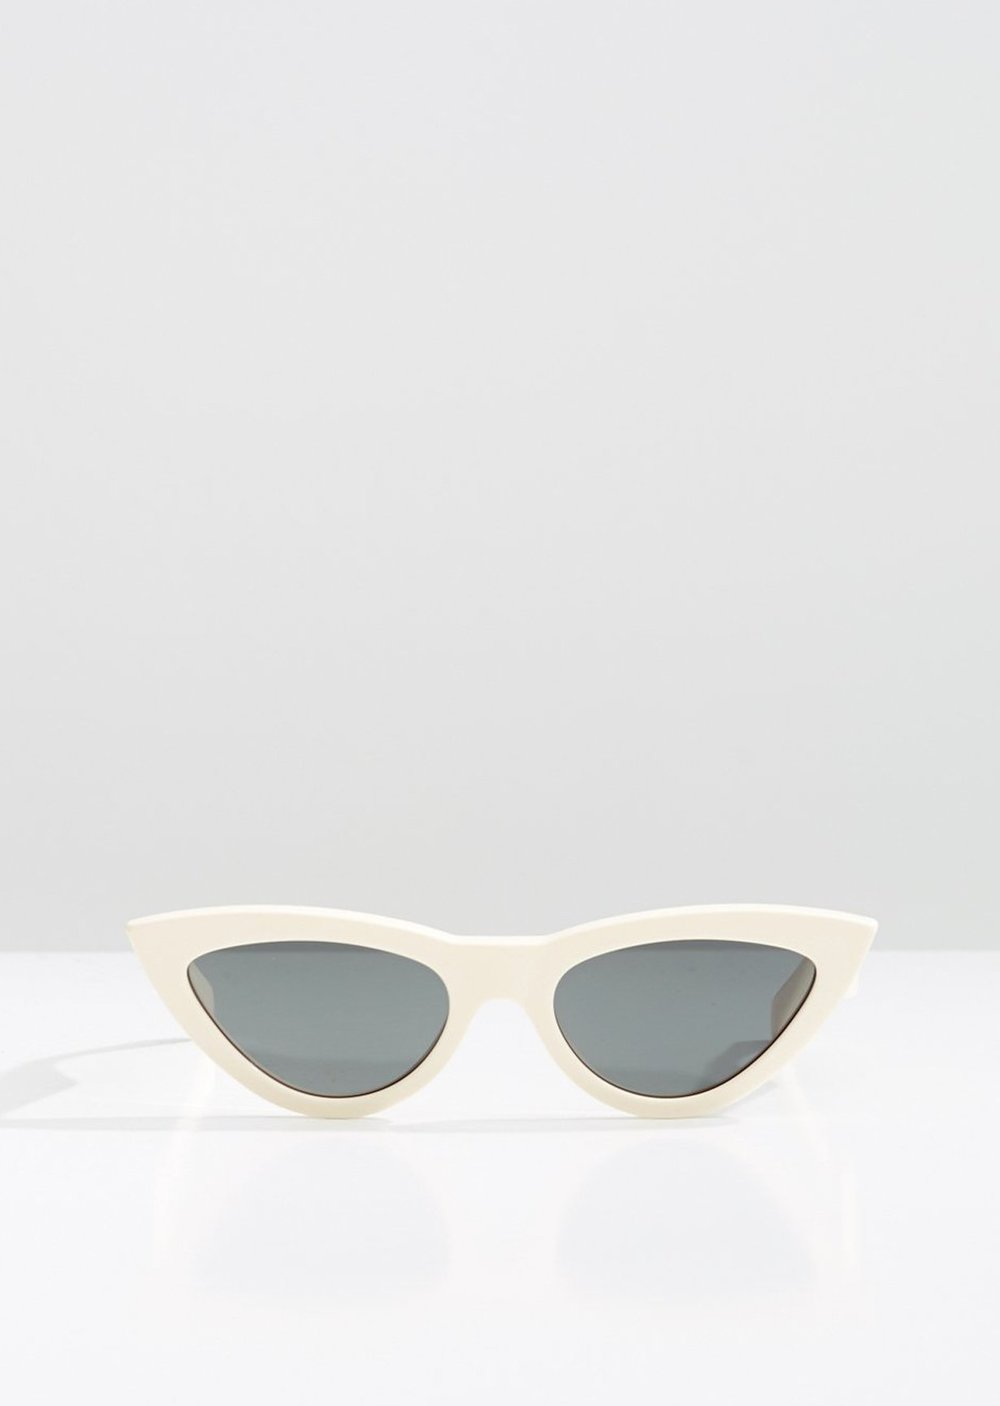 CELINE - CL40019I Sunglasses   £290   COLOUR  White   CATEGORY  SUN   MATERIAL  Acetate   SHAPE  Cat Eye